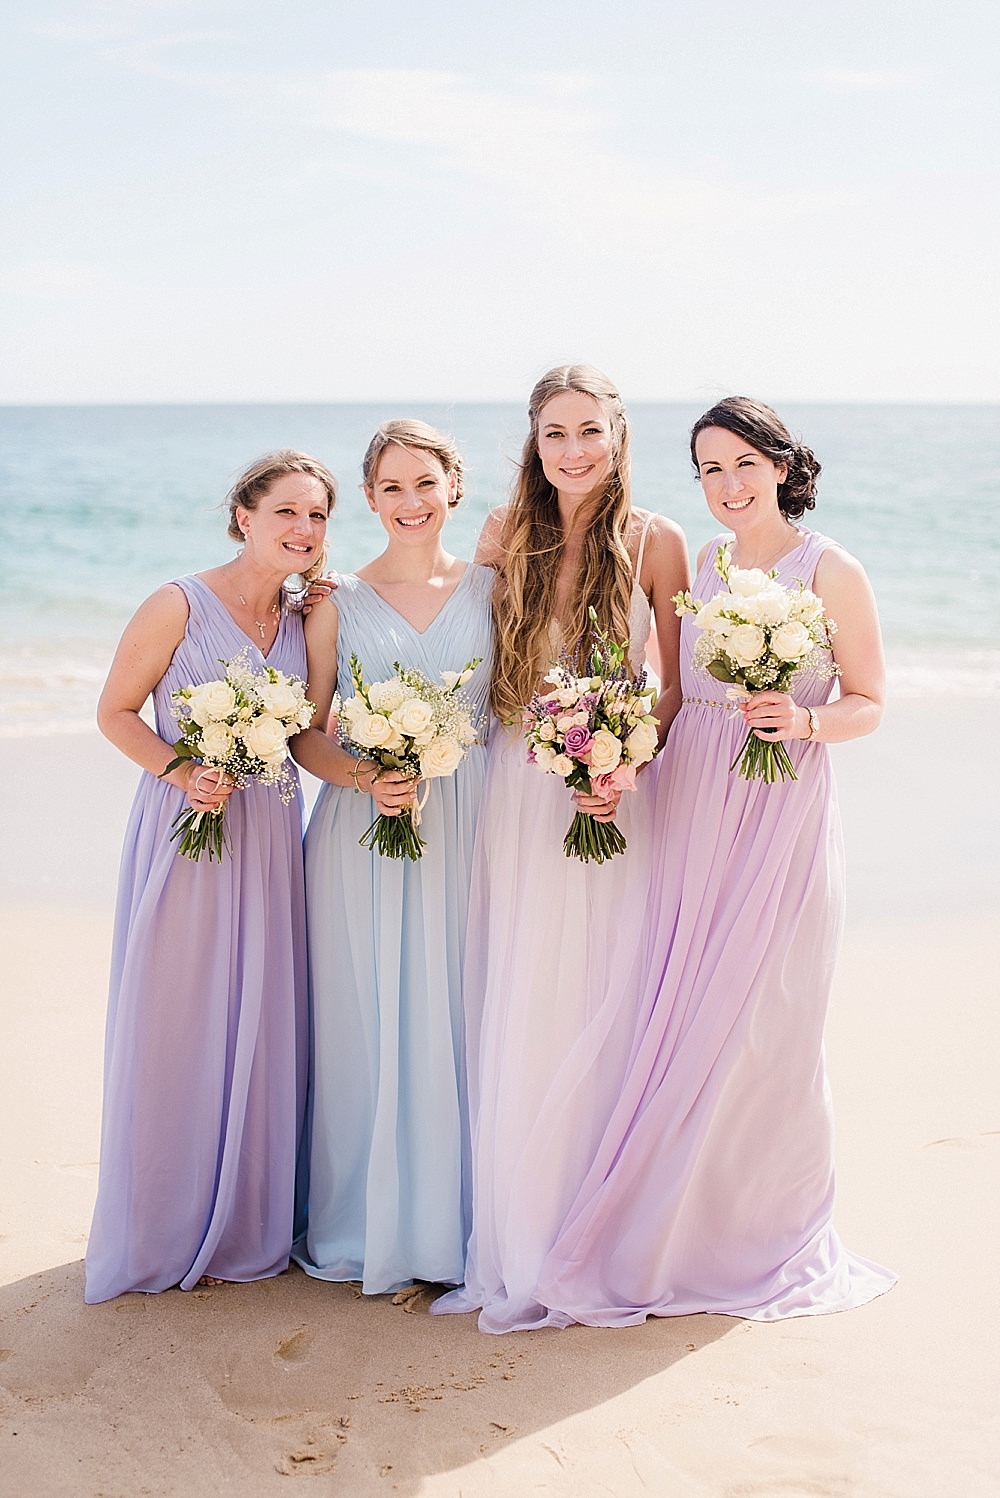 Boho Beach Wedding With Bride In High Street Separates Bridesmaids In Pastel Dresses,Mermaid Most Popular Wedding Dresses